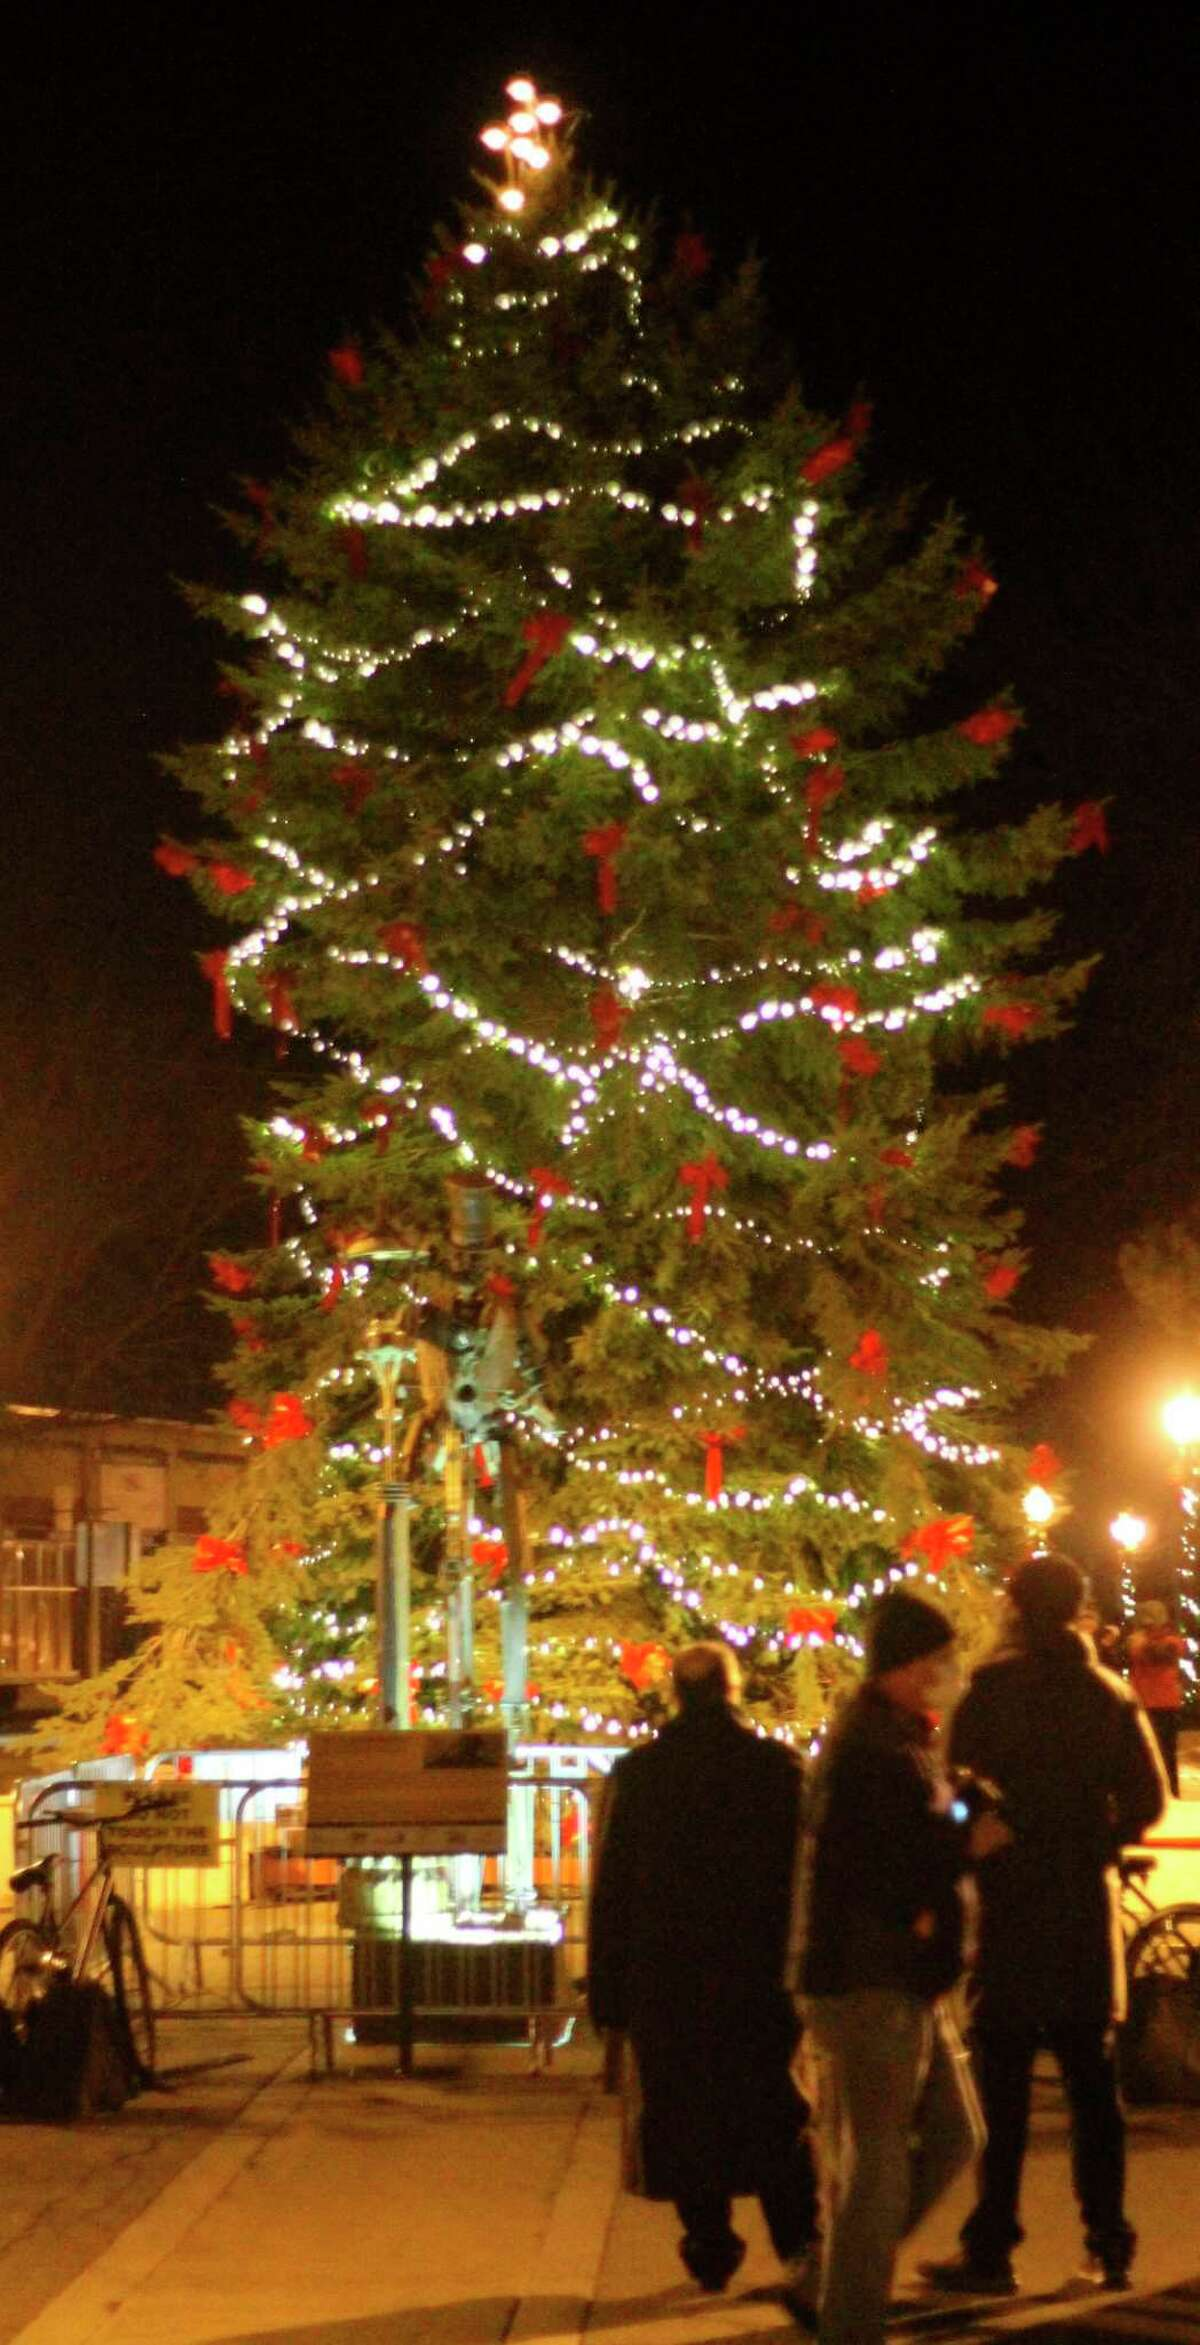 A 45-foot spruce tree was lit in downtown Manistee Saturday during a virtual tree lighting ceremony which was broadcast on Facebook Live. (Kyle Kotecki/News Advocate)